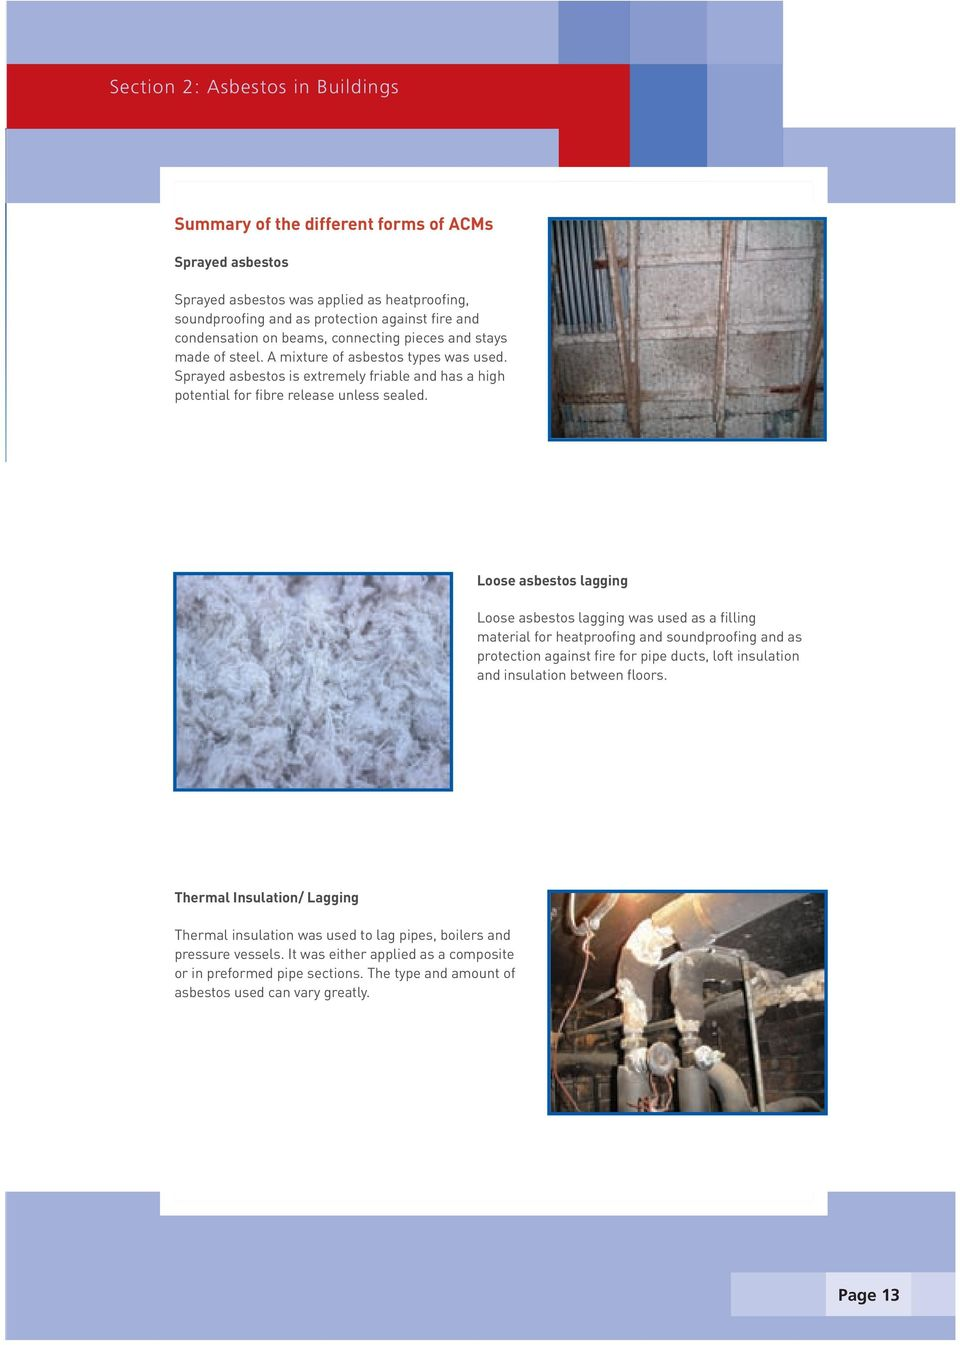 Loose asbestos lagging Loose asbestos lagging was used as a filling material for heatproofing and soundproofing and as protection against fire for pipe ducts, loft insulation and insulation between